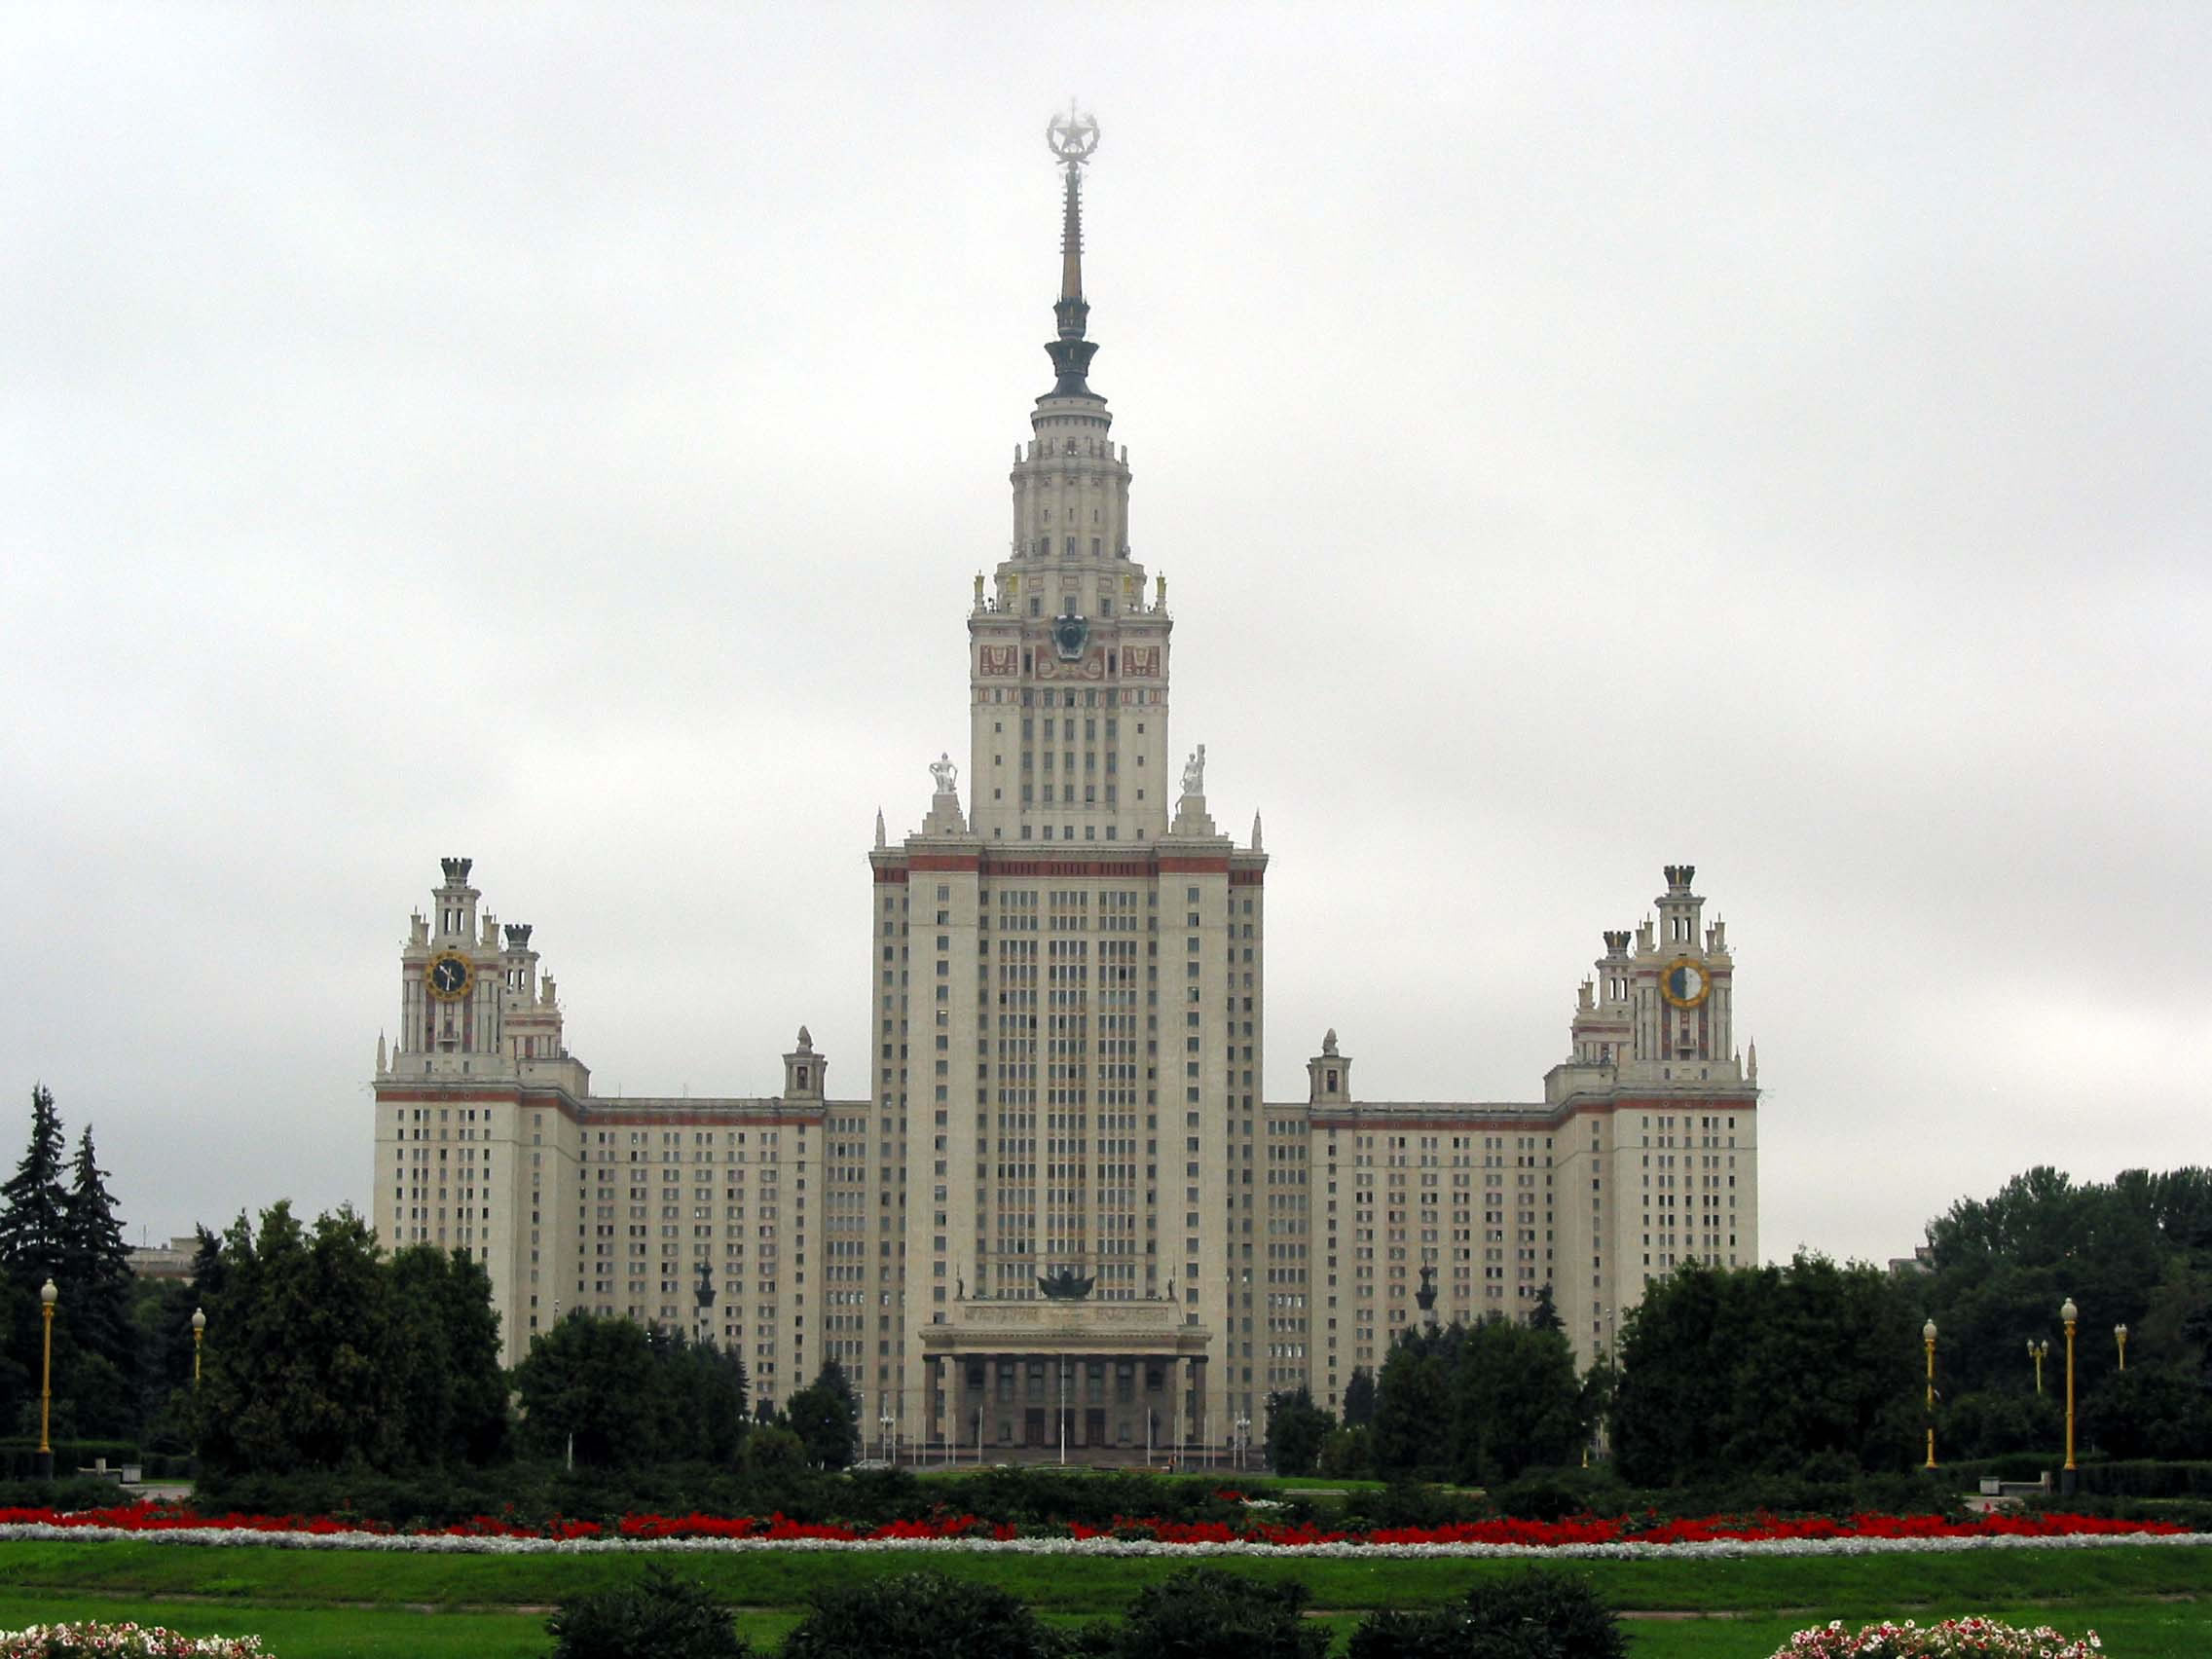 Architecture Moscow State University Sparrow Hills 02